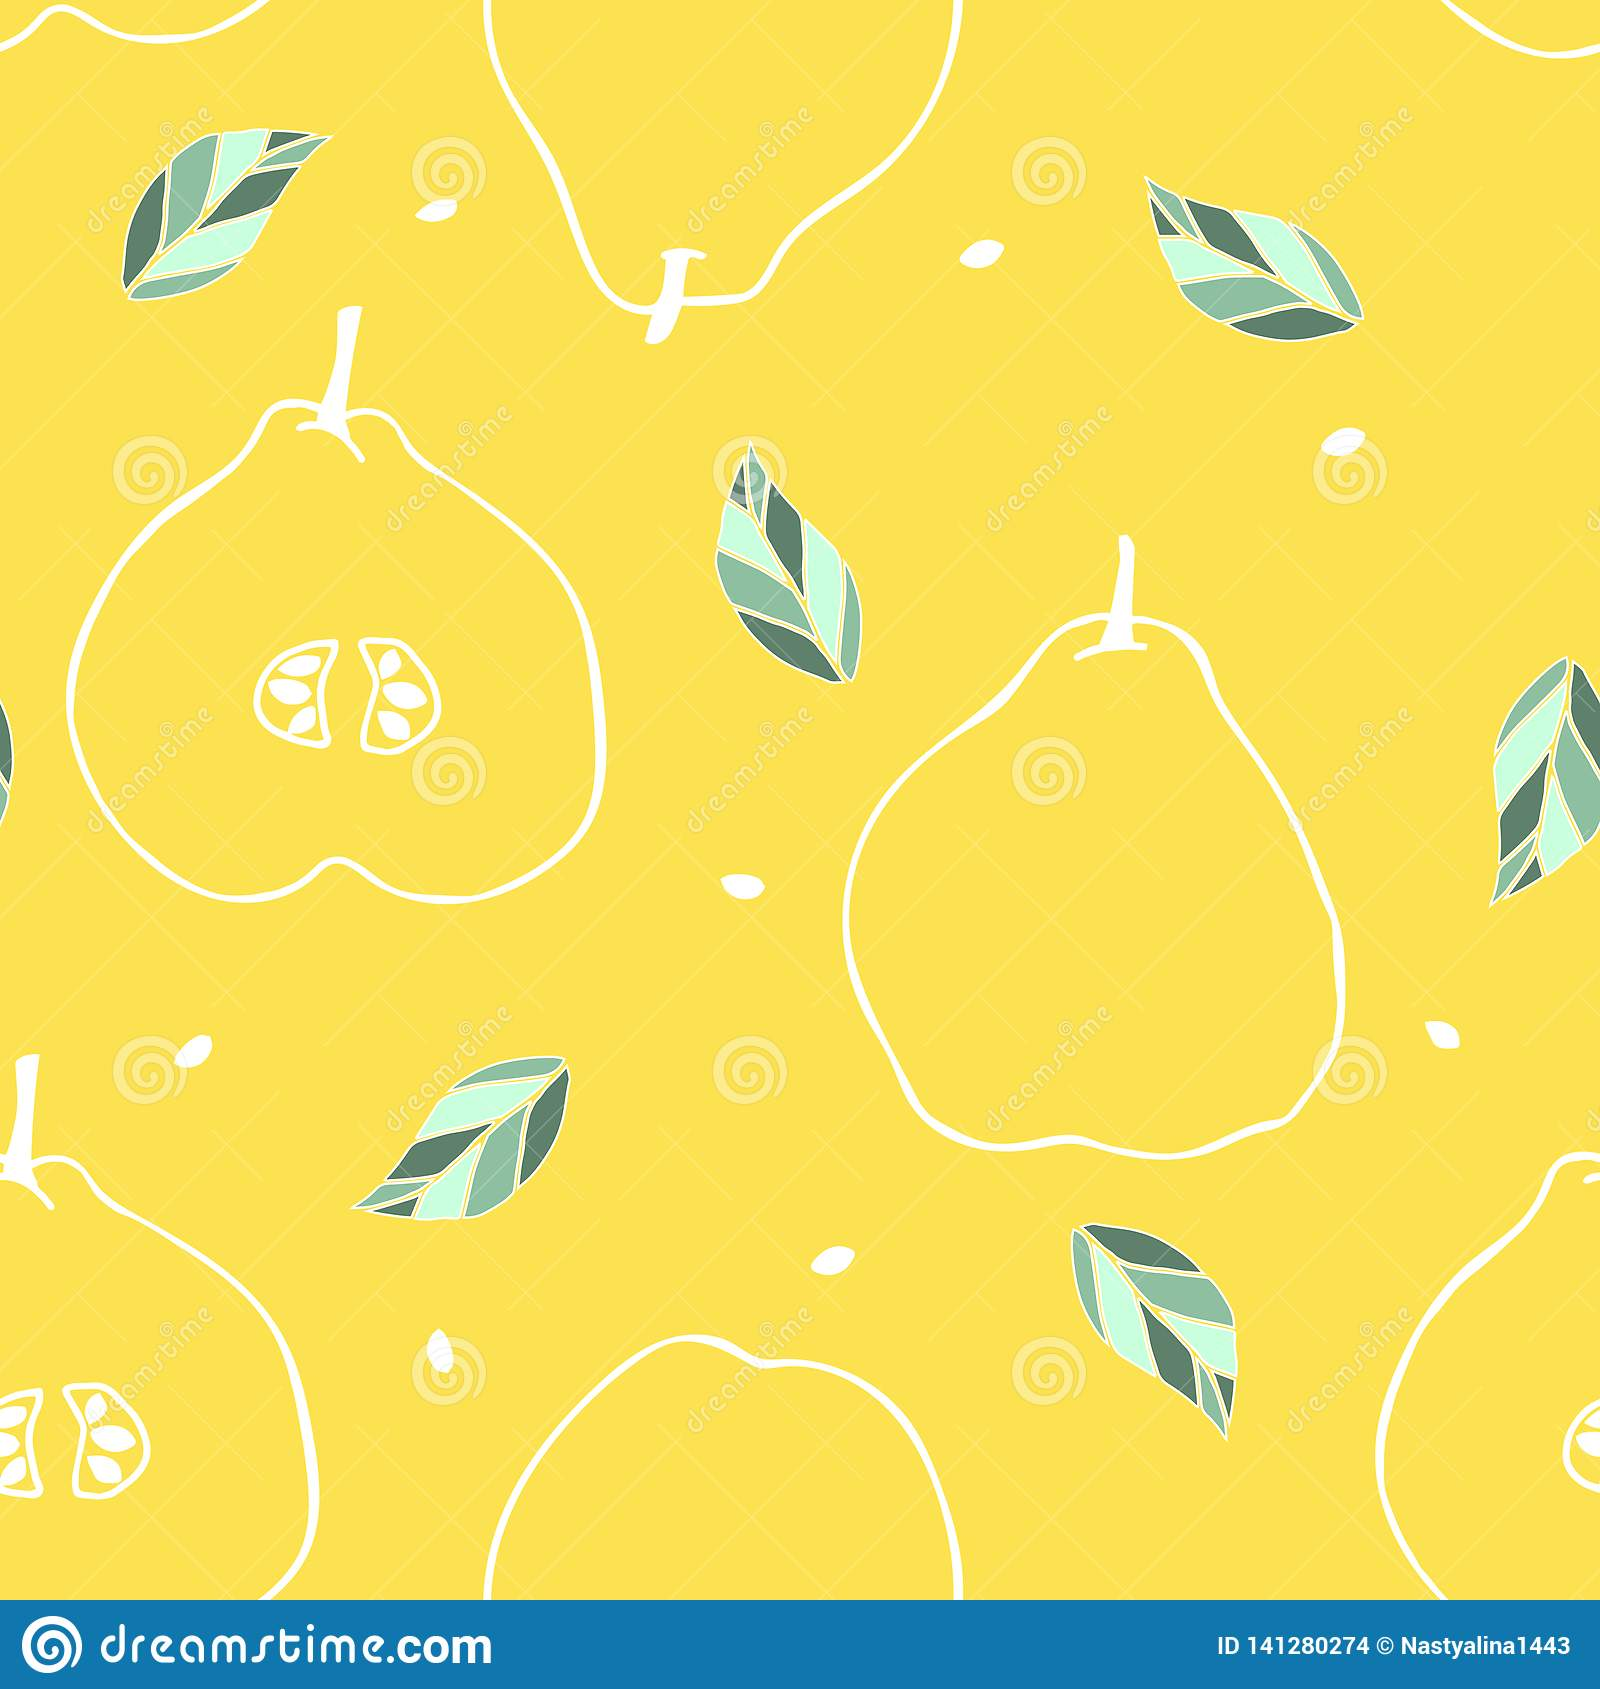 Seamless pattern with outline quince, leaf and seed. Tropical fruit background.Tasty wallpaper with one line drawing of quince